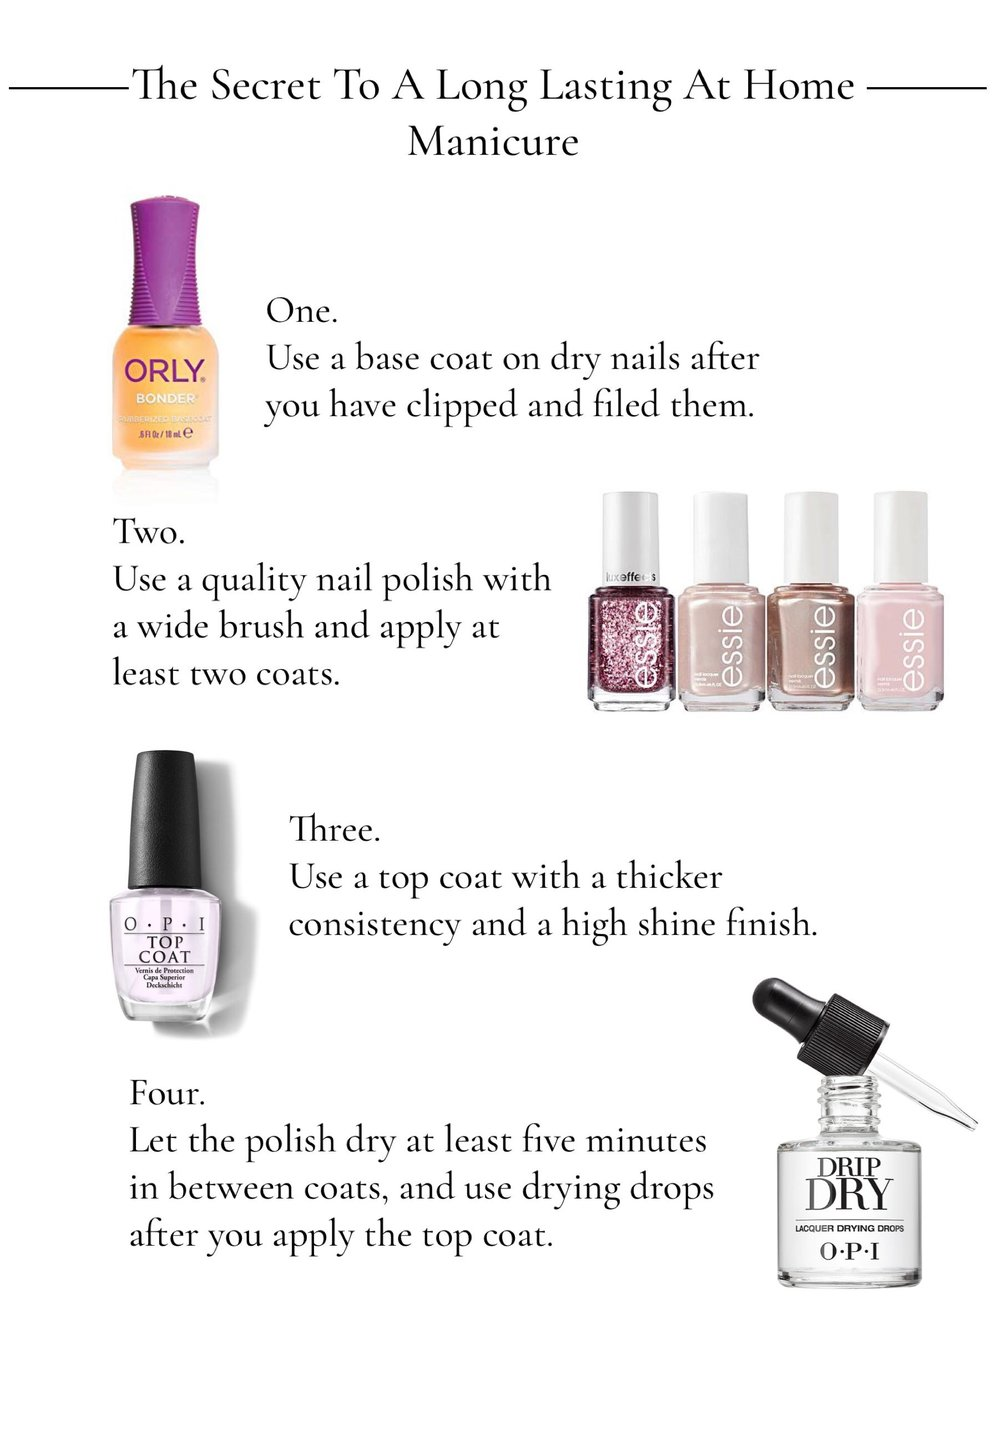 the secret to a long lasting at home manicure